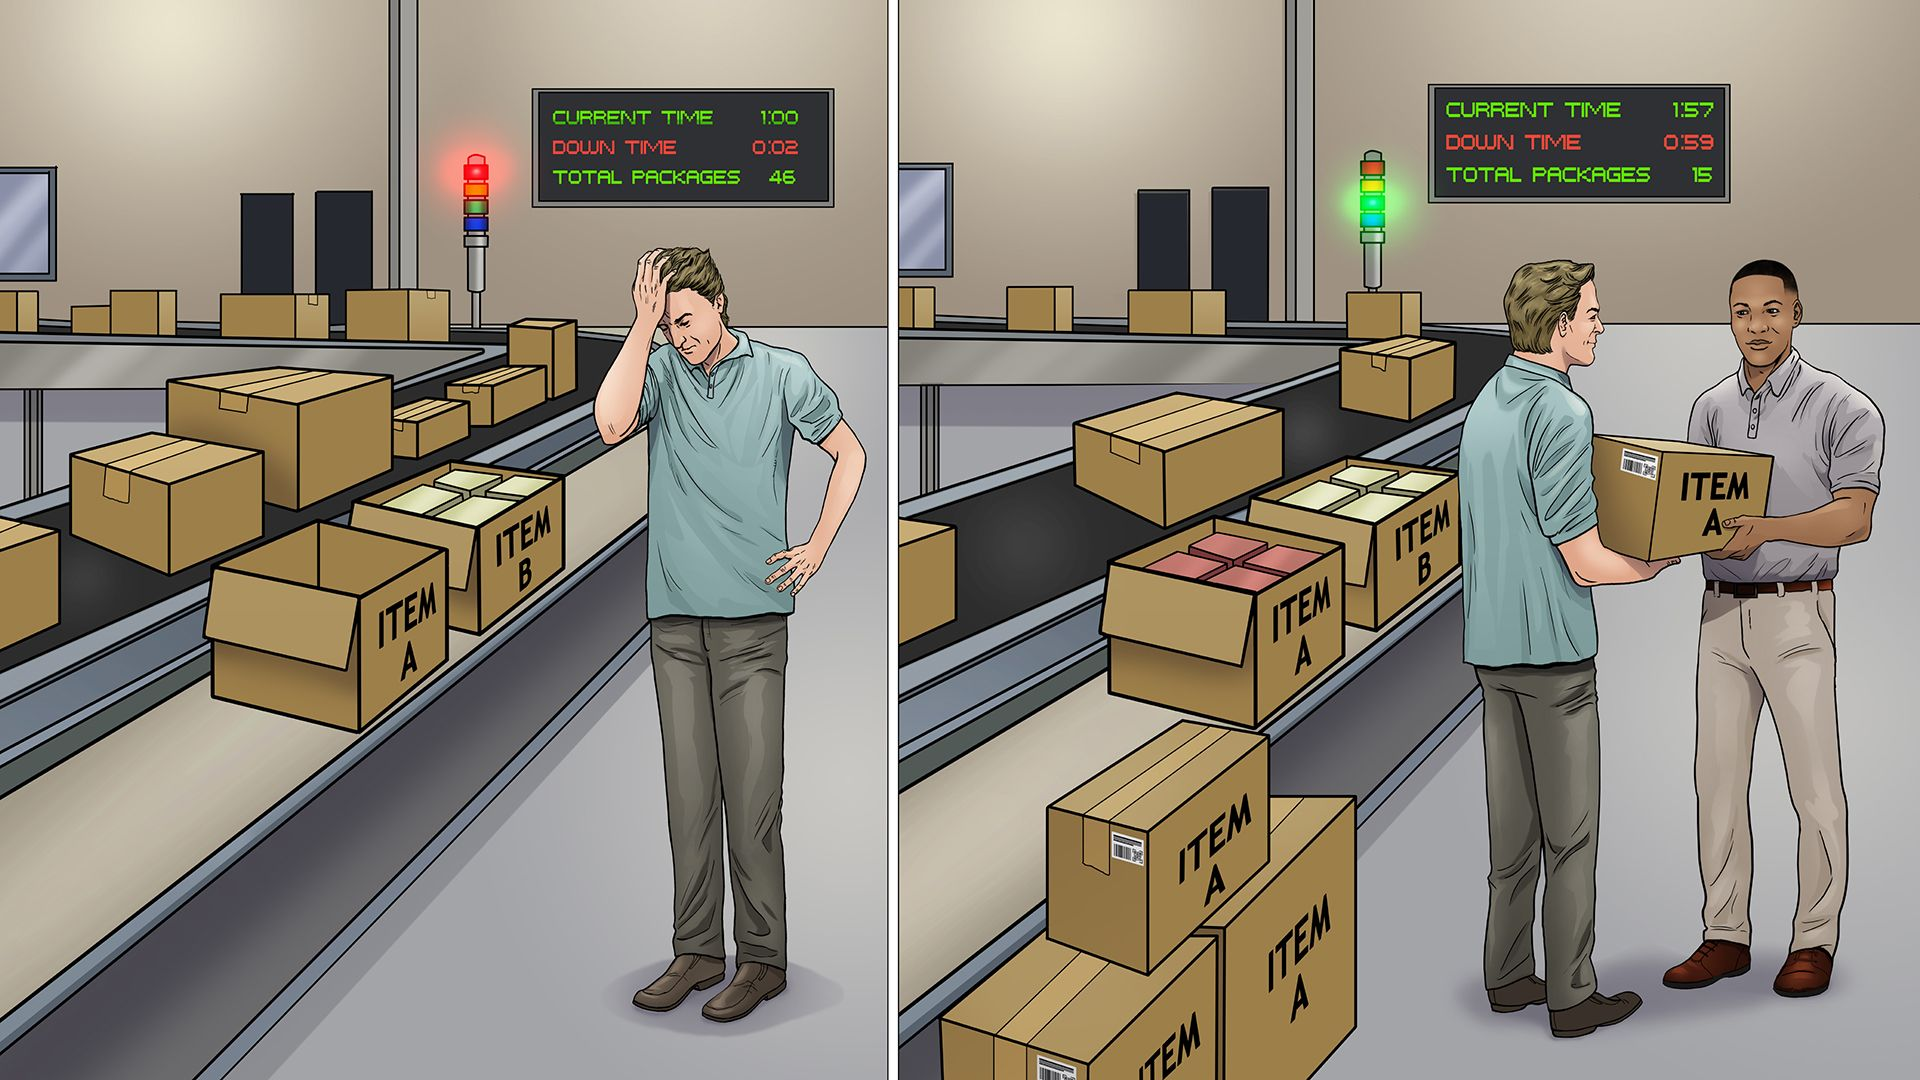 A frustrated assembly line worker that has run out of an item to complete an order. Chris saves the day by delivering the item just in time.